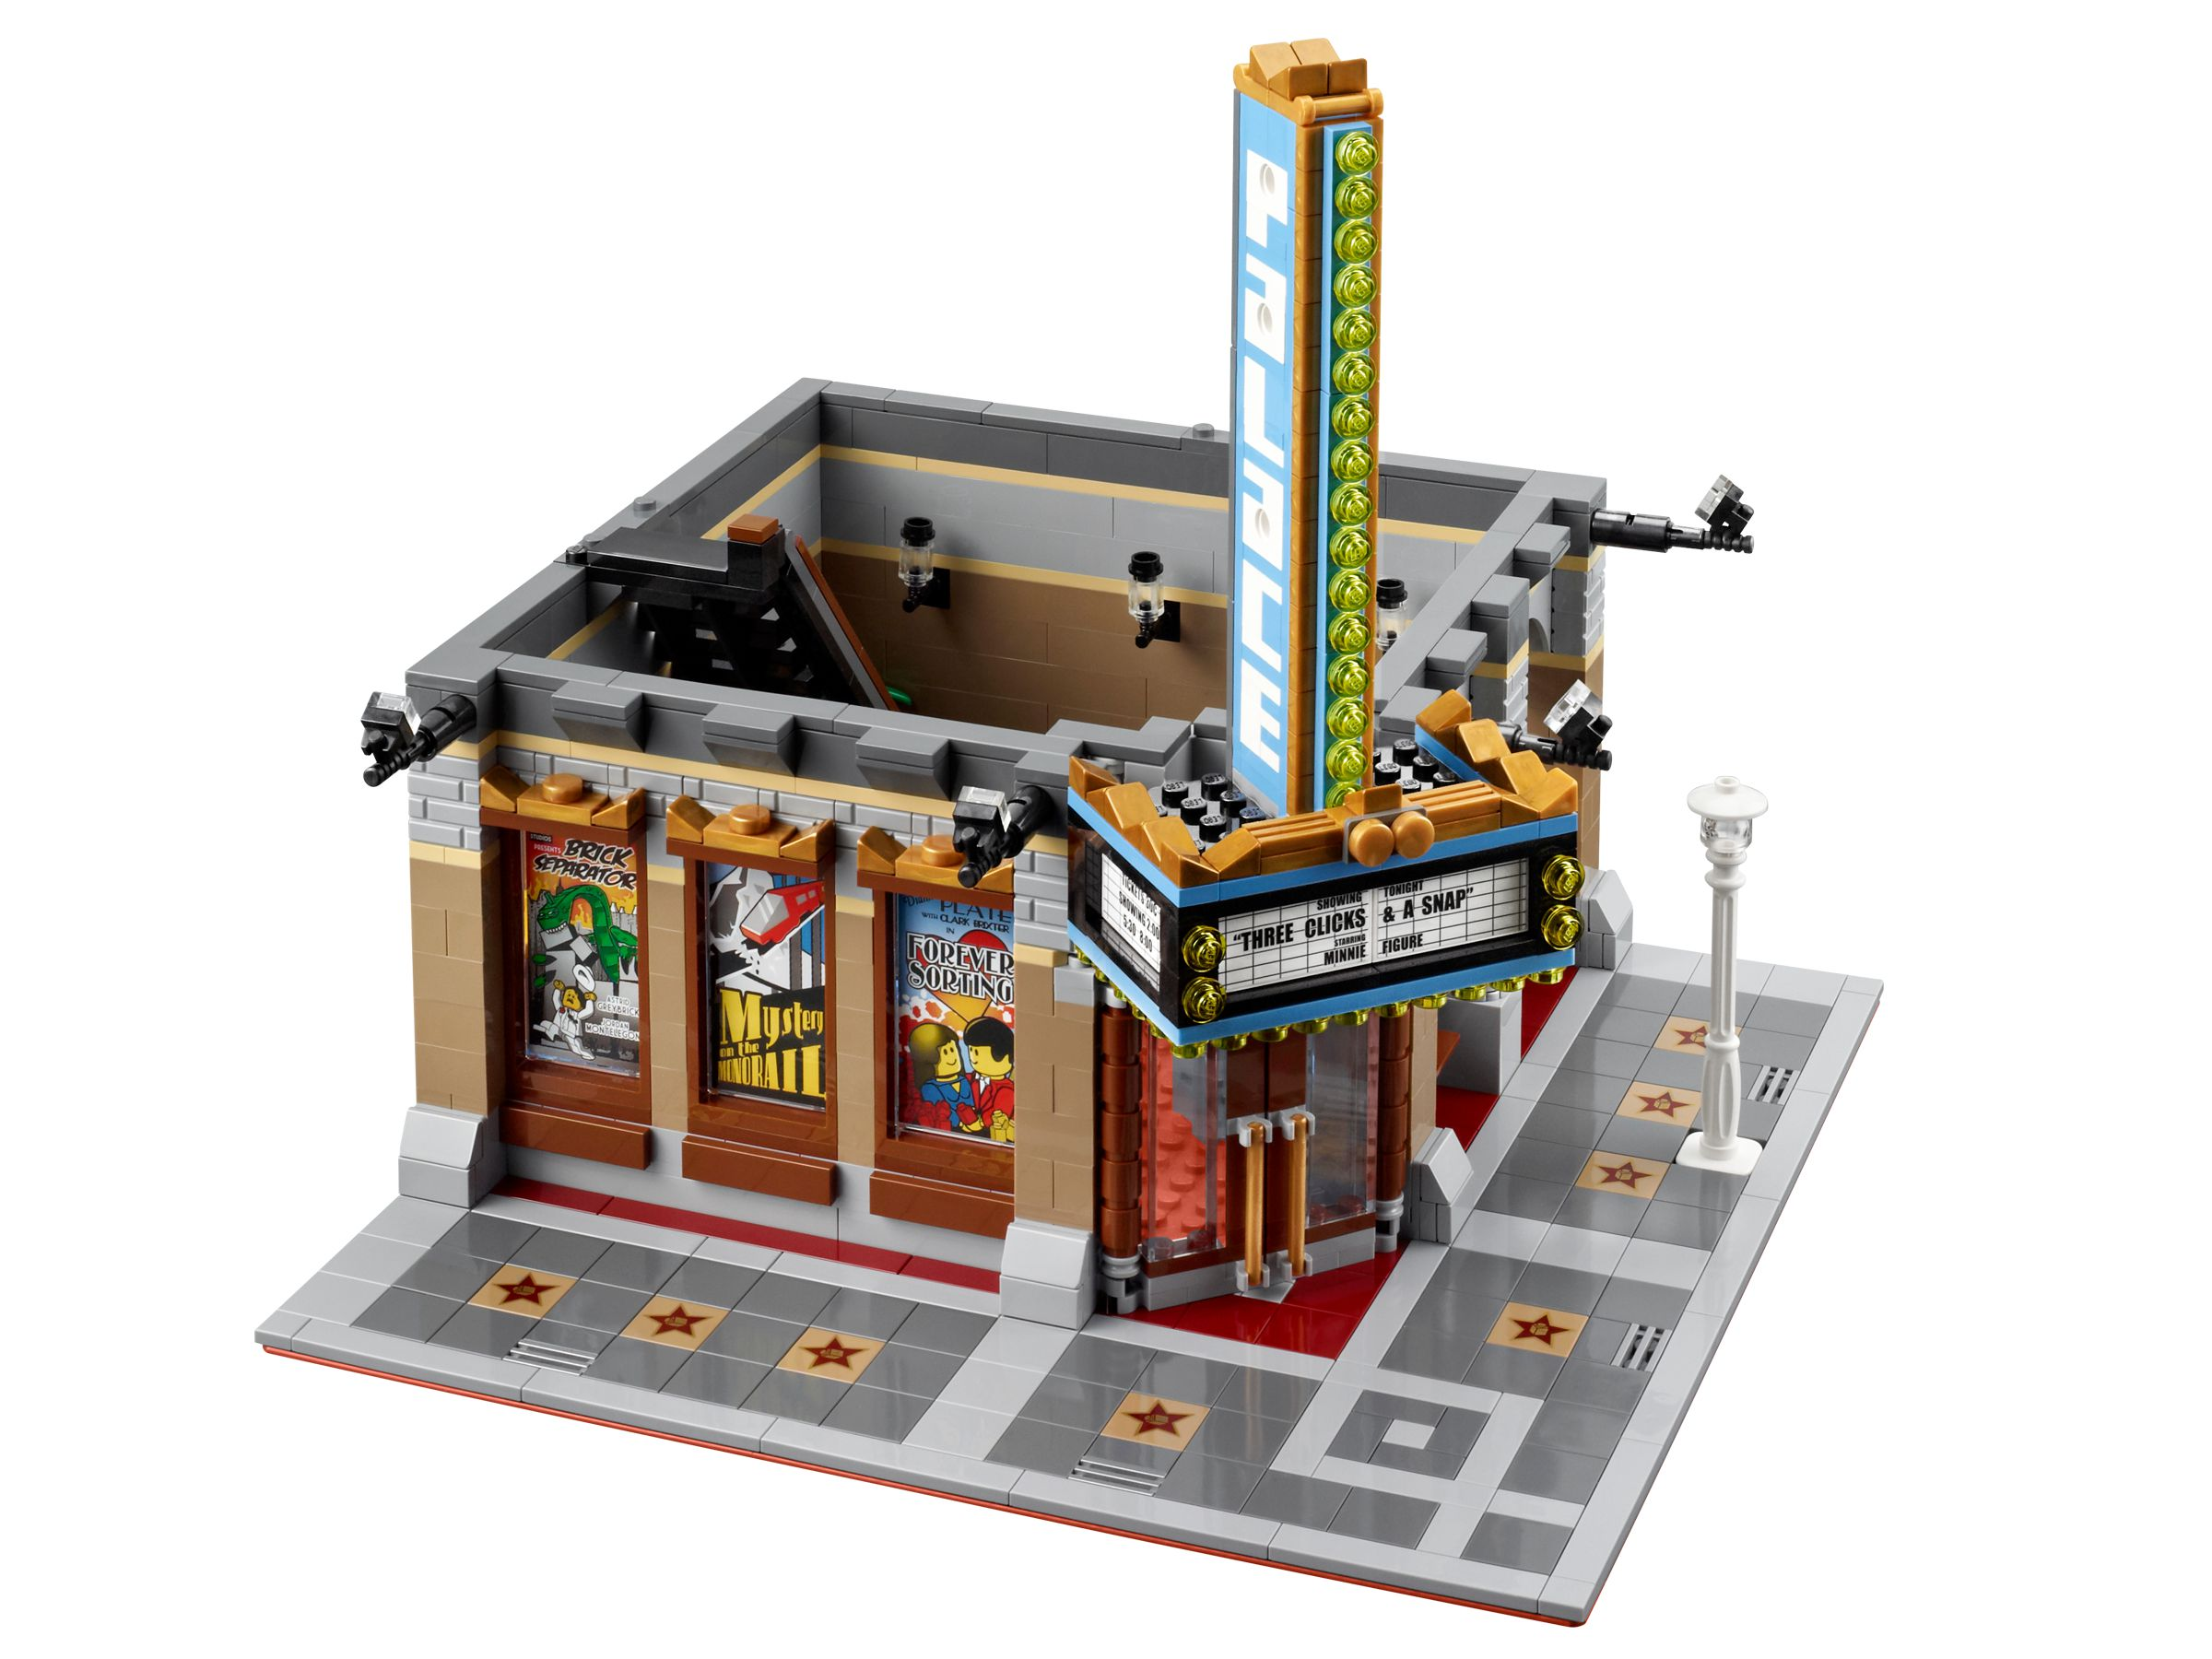 LEGO Advanced Models 10232 Palace Cinema LEGO_10232_alt3.jpg